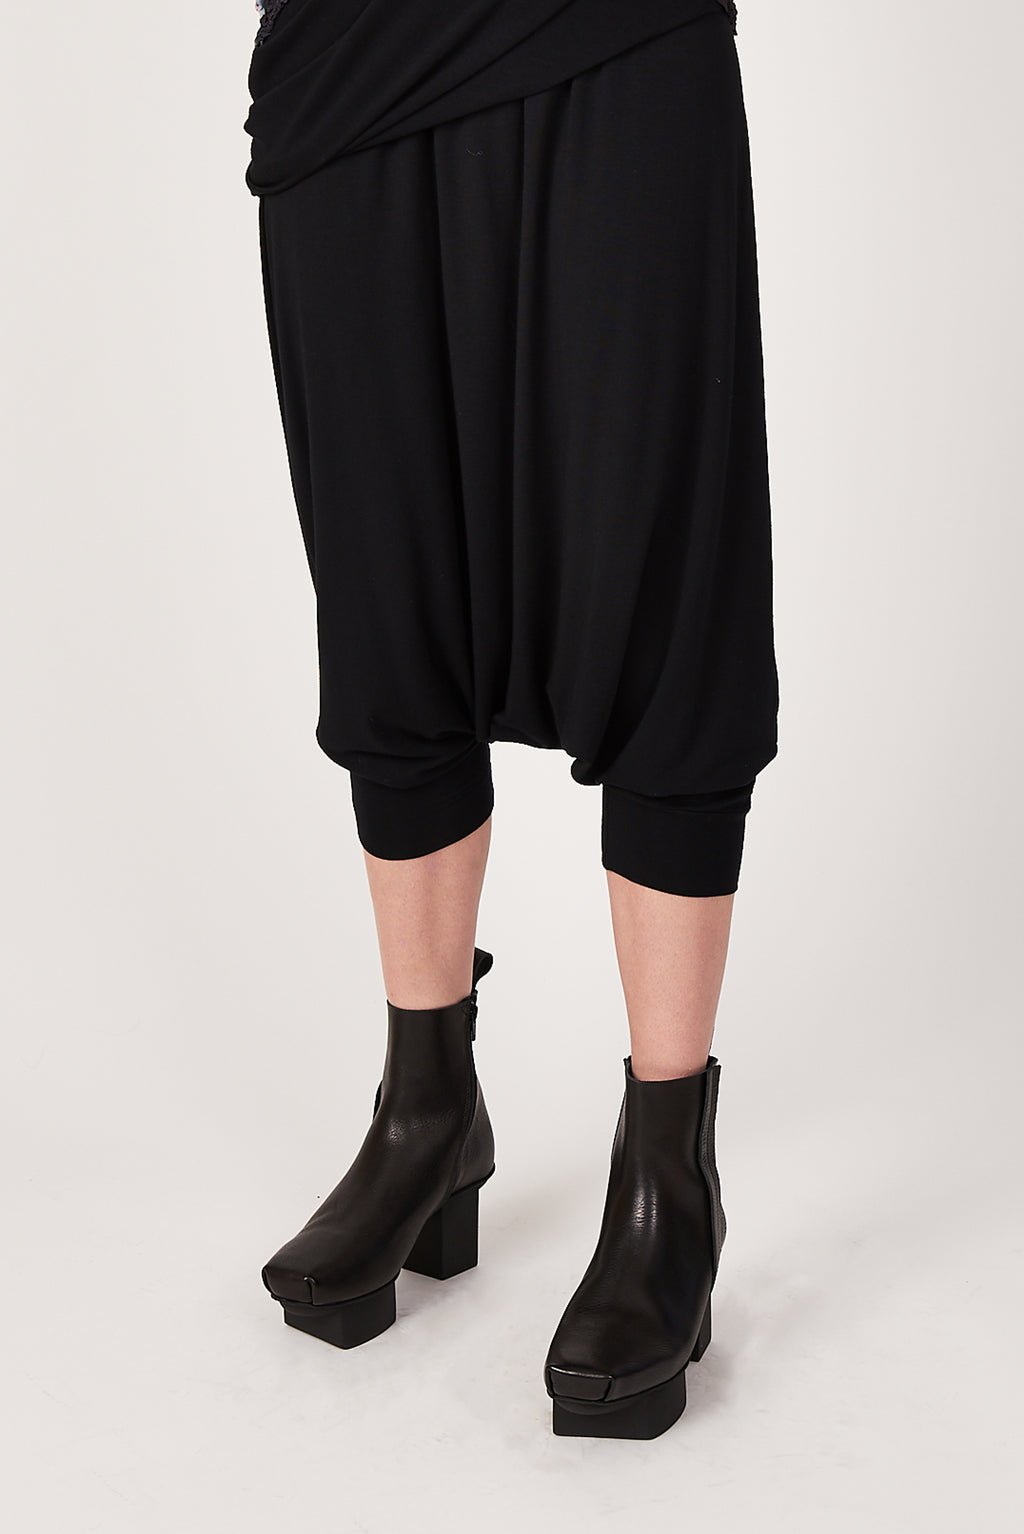 Berlin Pant in Black Bamboo Jersey